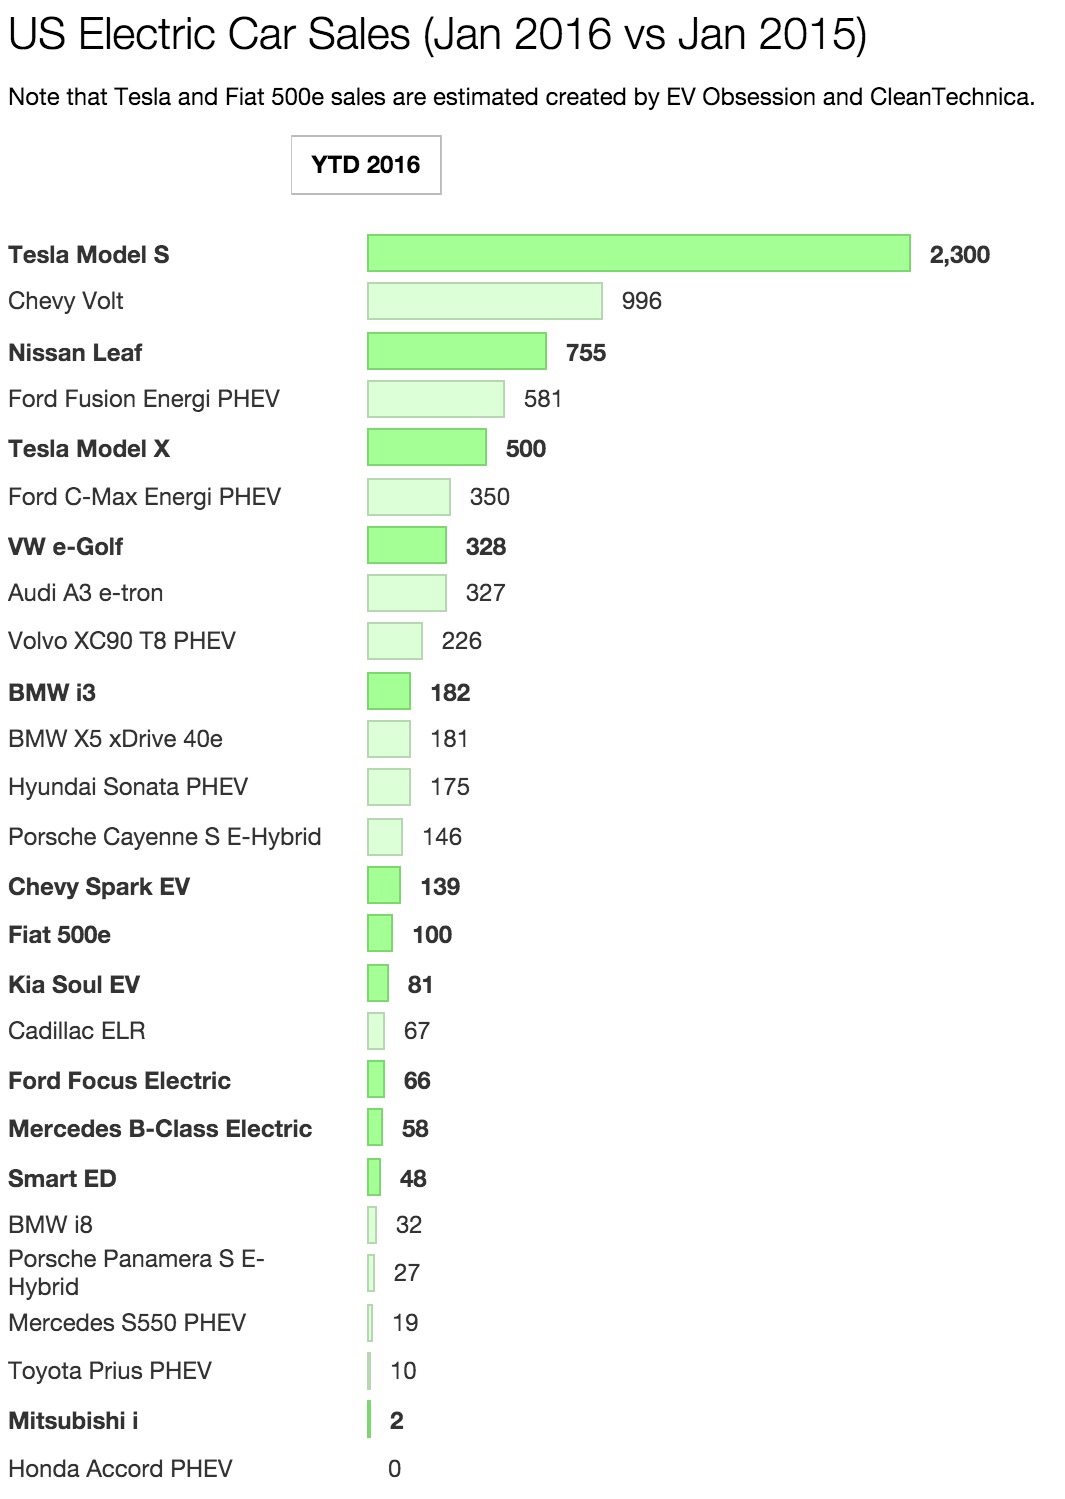 Us Electric Car Sales Rise 15 January Electric Car Sales Cars For Sale Tesla Model S Electric Car